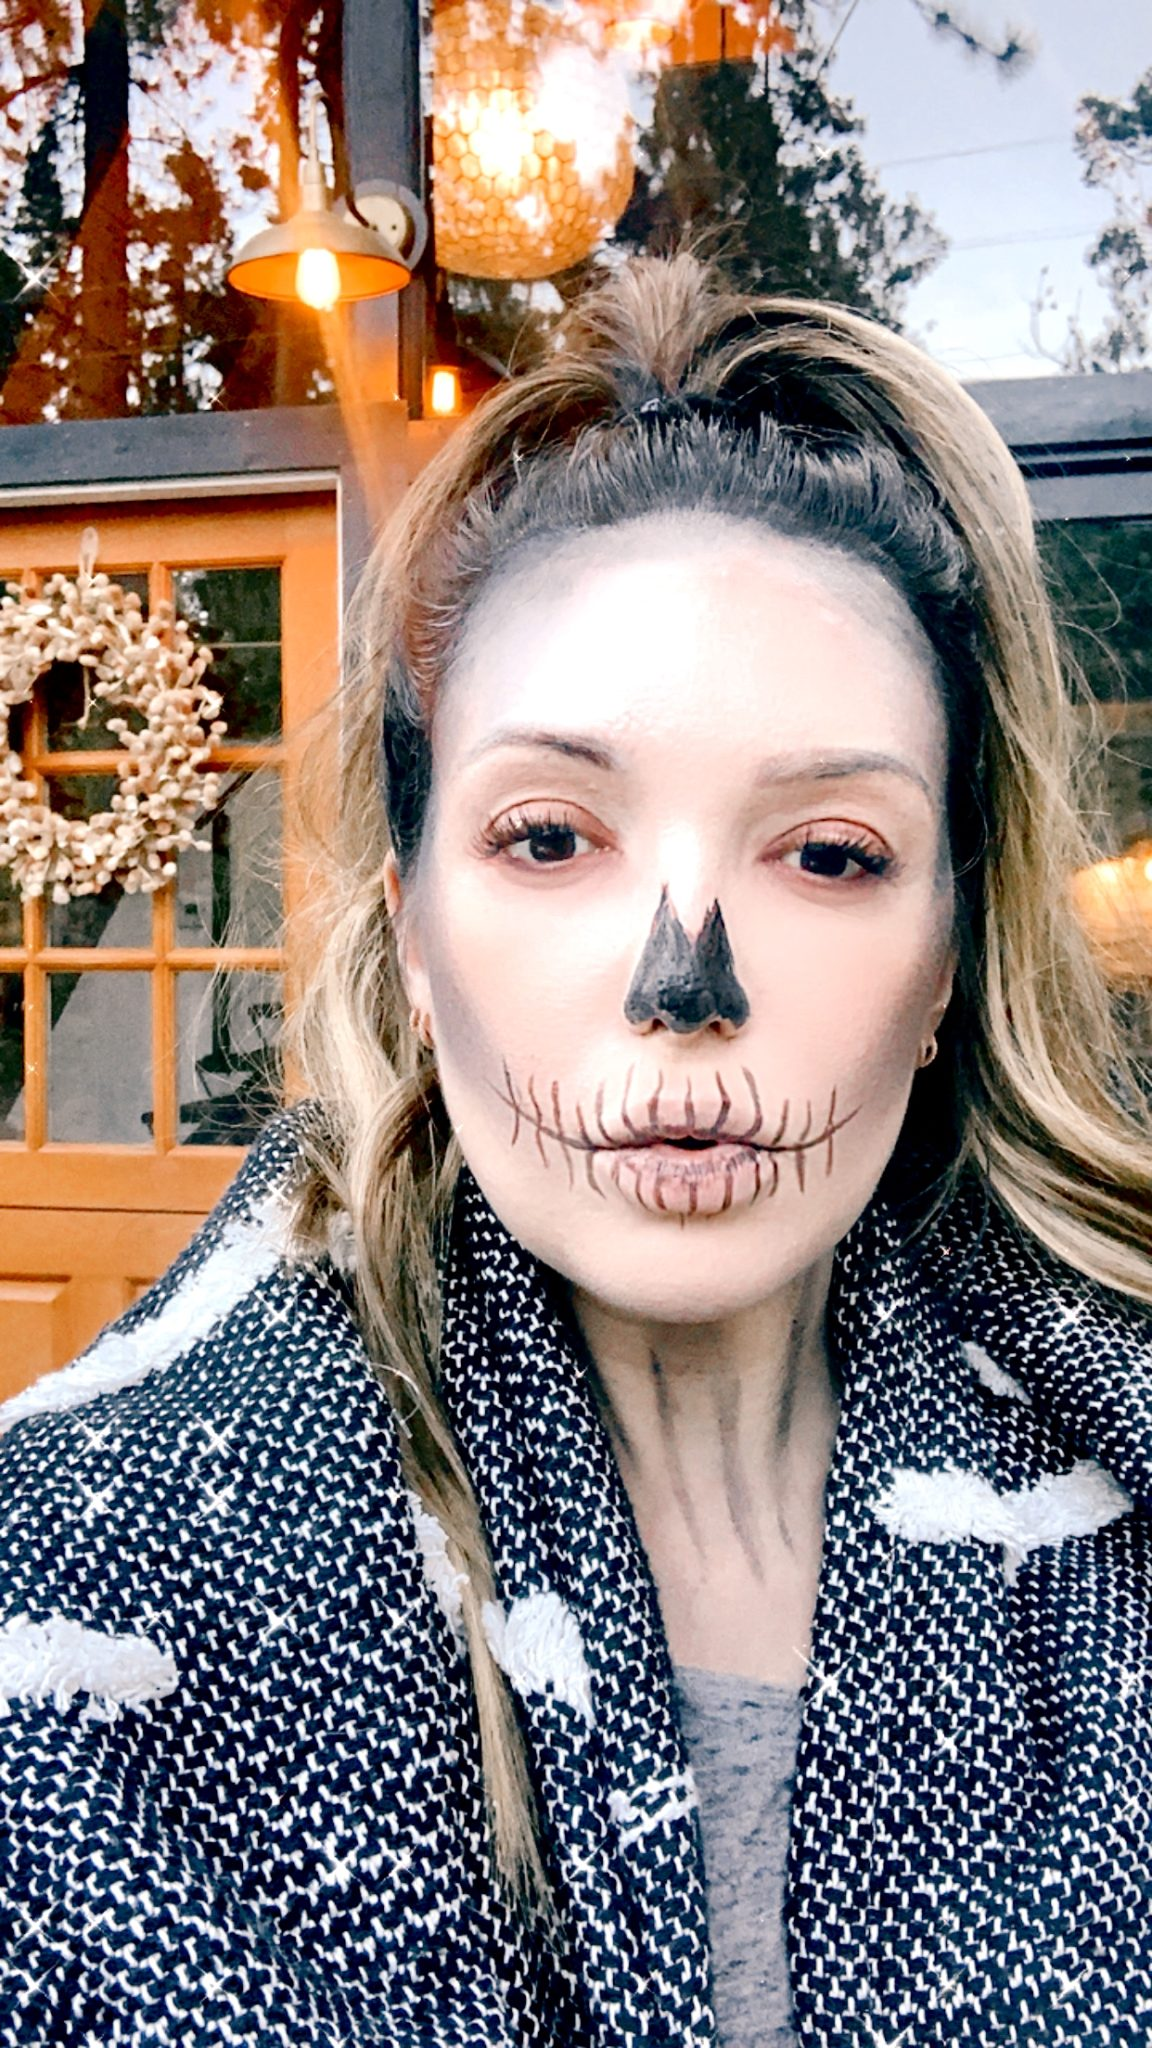 soft neutrals skeleton makeup |Skeleton Makeup Tutorial by popular San Francisco beauty blog, Just Add glam: image of a woman wearing skeleton makeup.